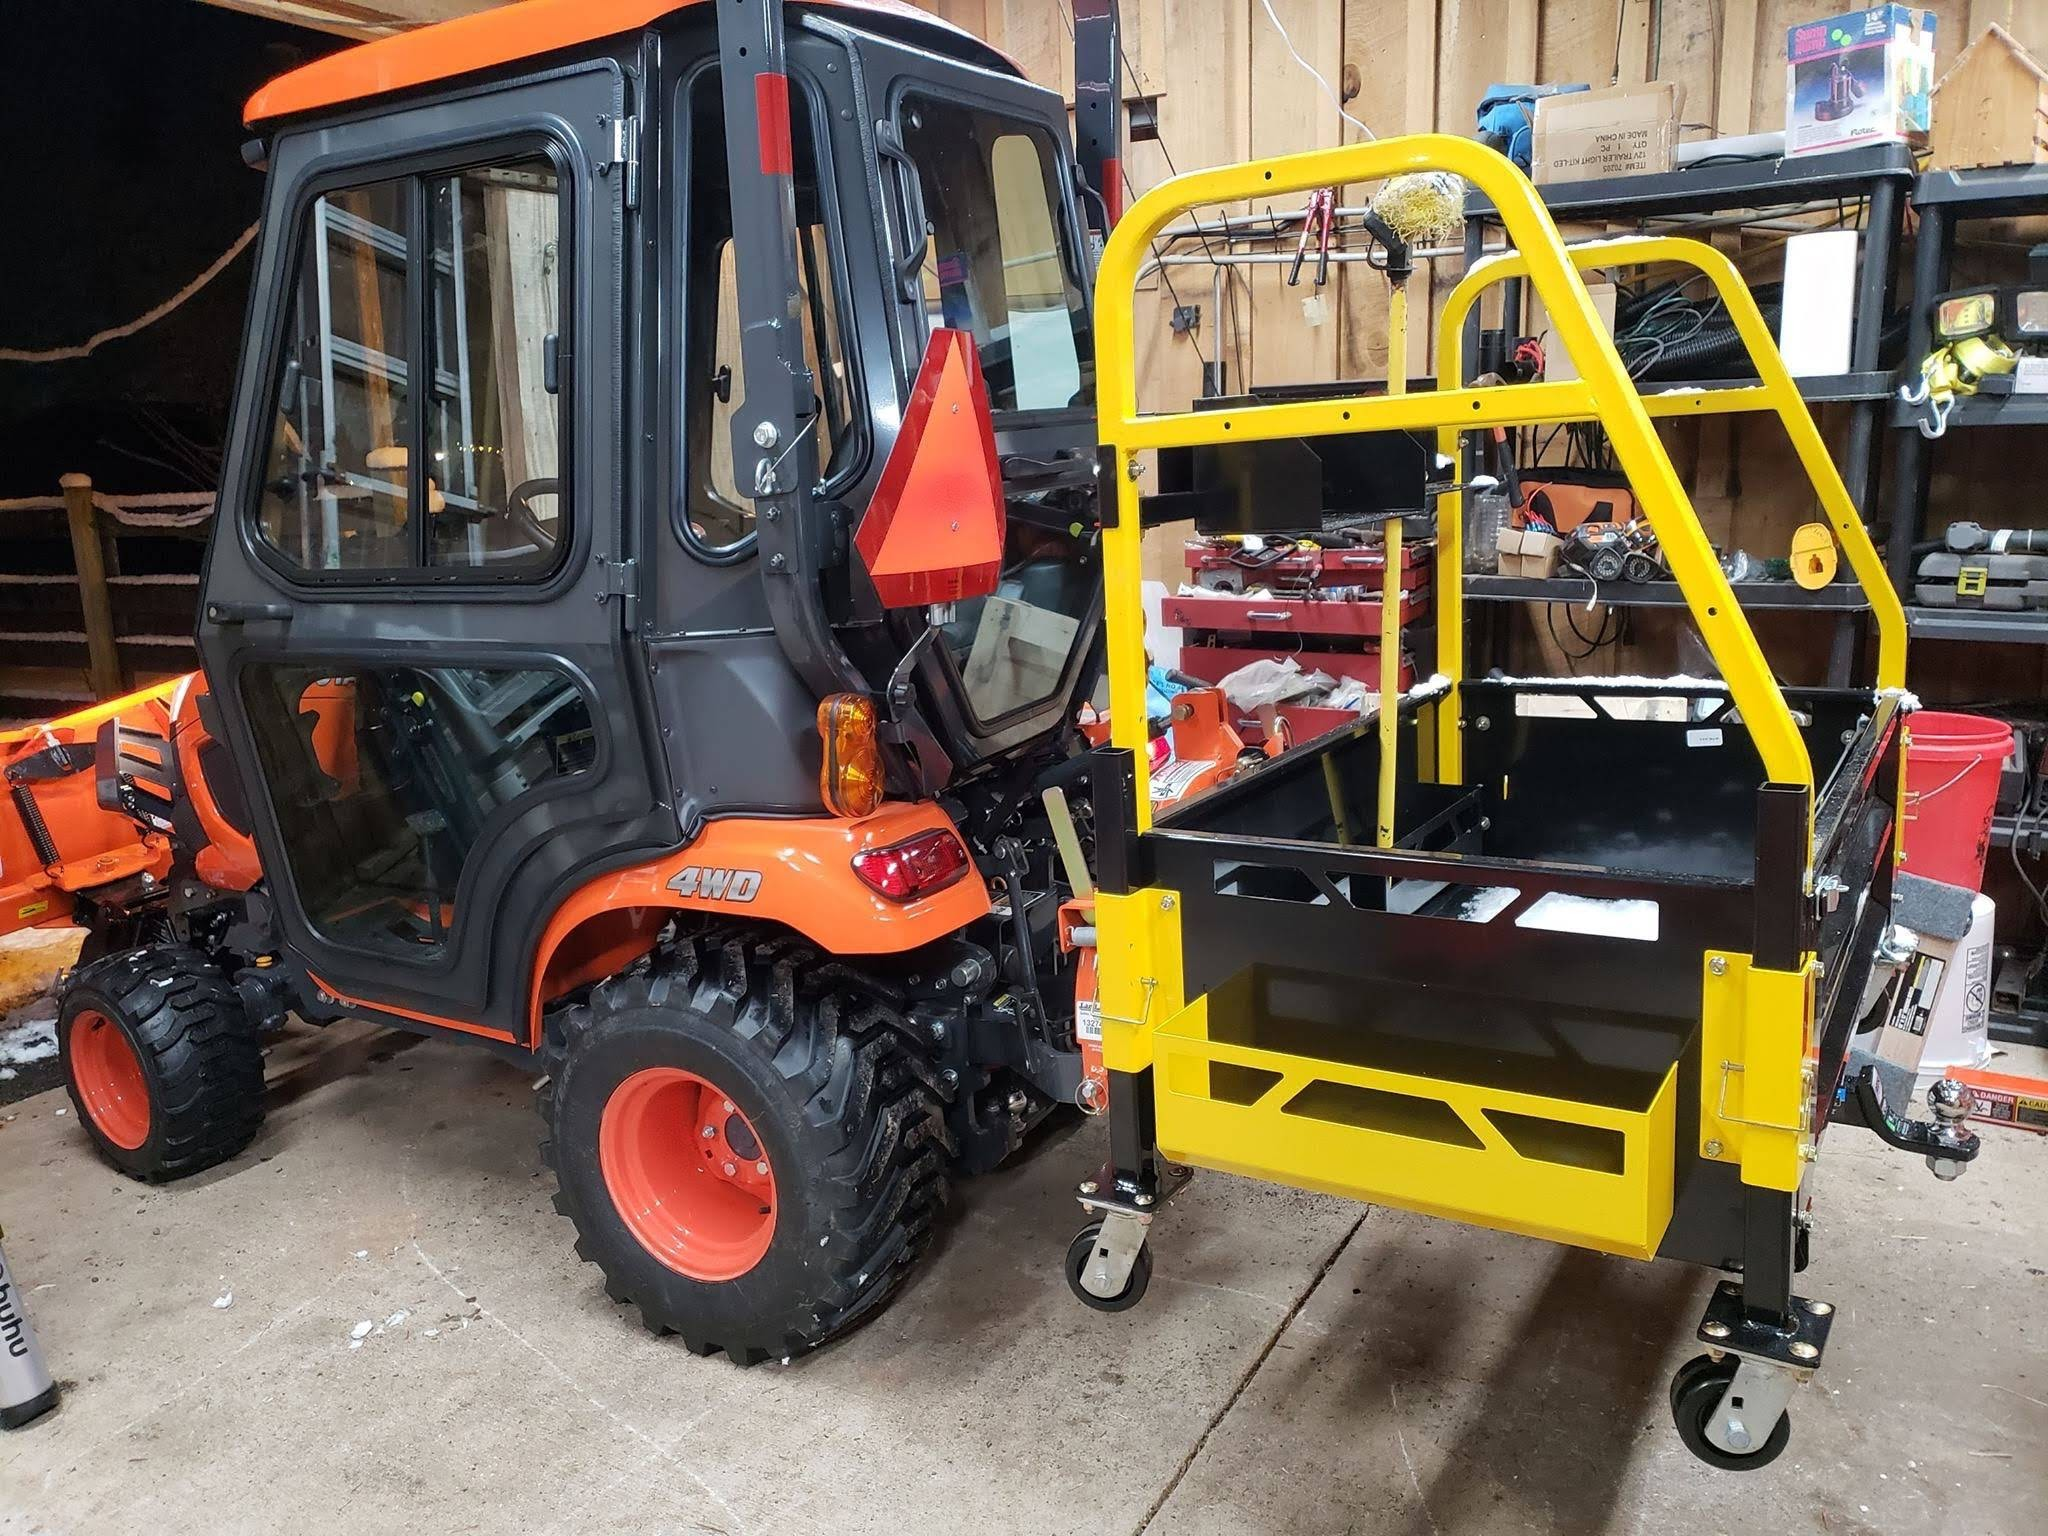 Reviews of Bigtoolrack | Client Reviews For Compact tractor